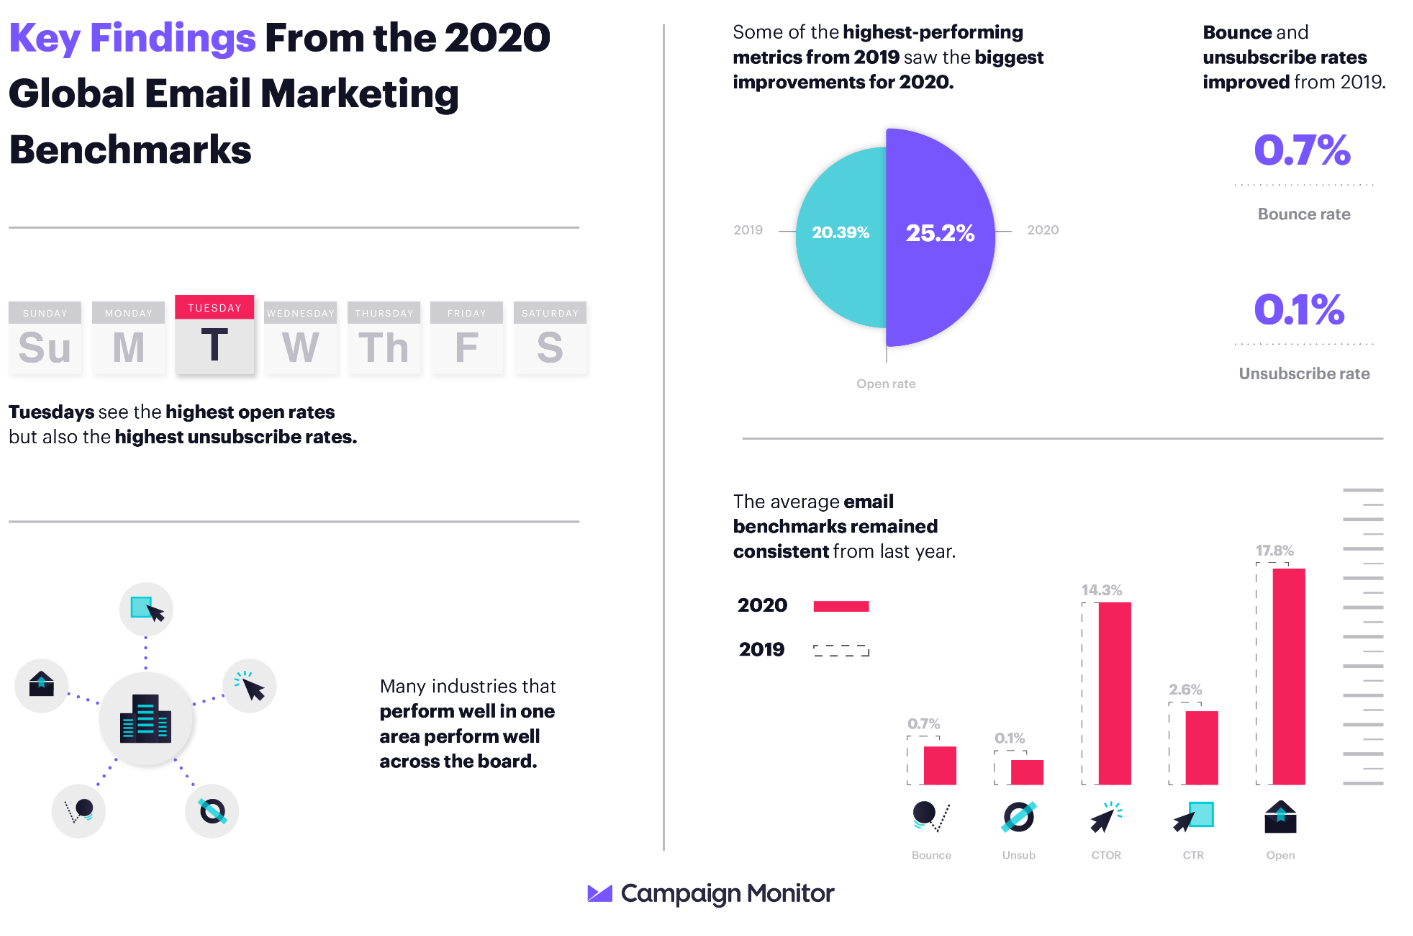 Key findings from the 2020 email marketing benchmarks